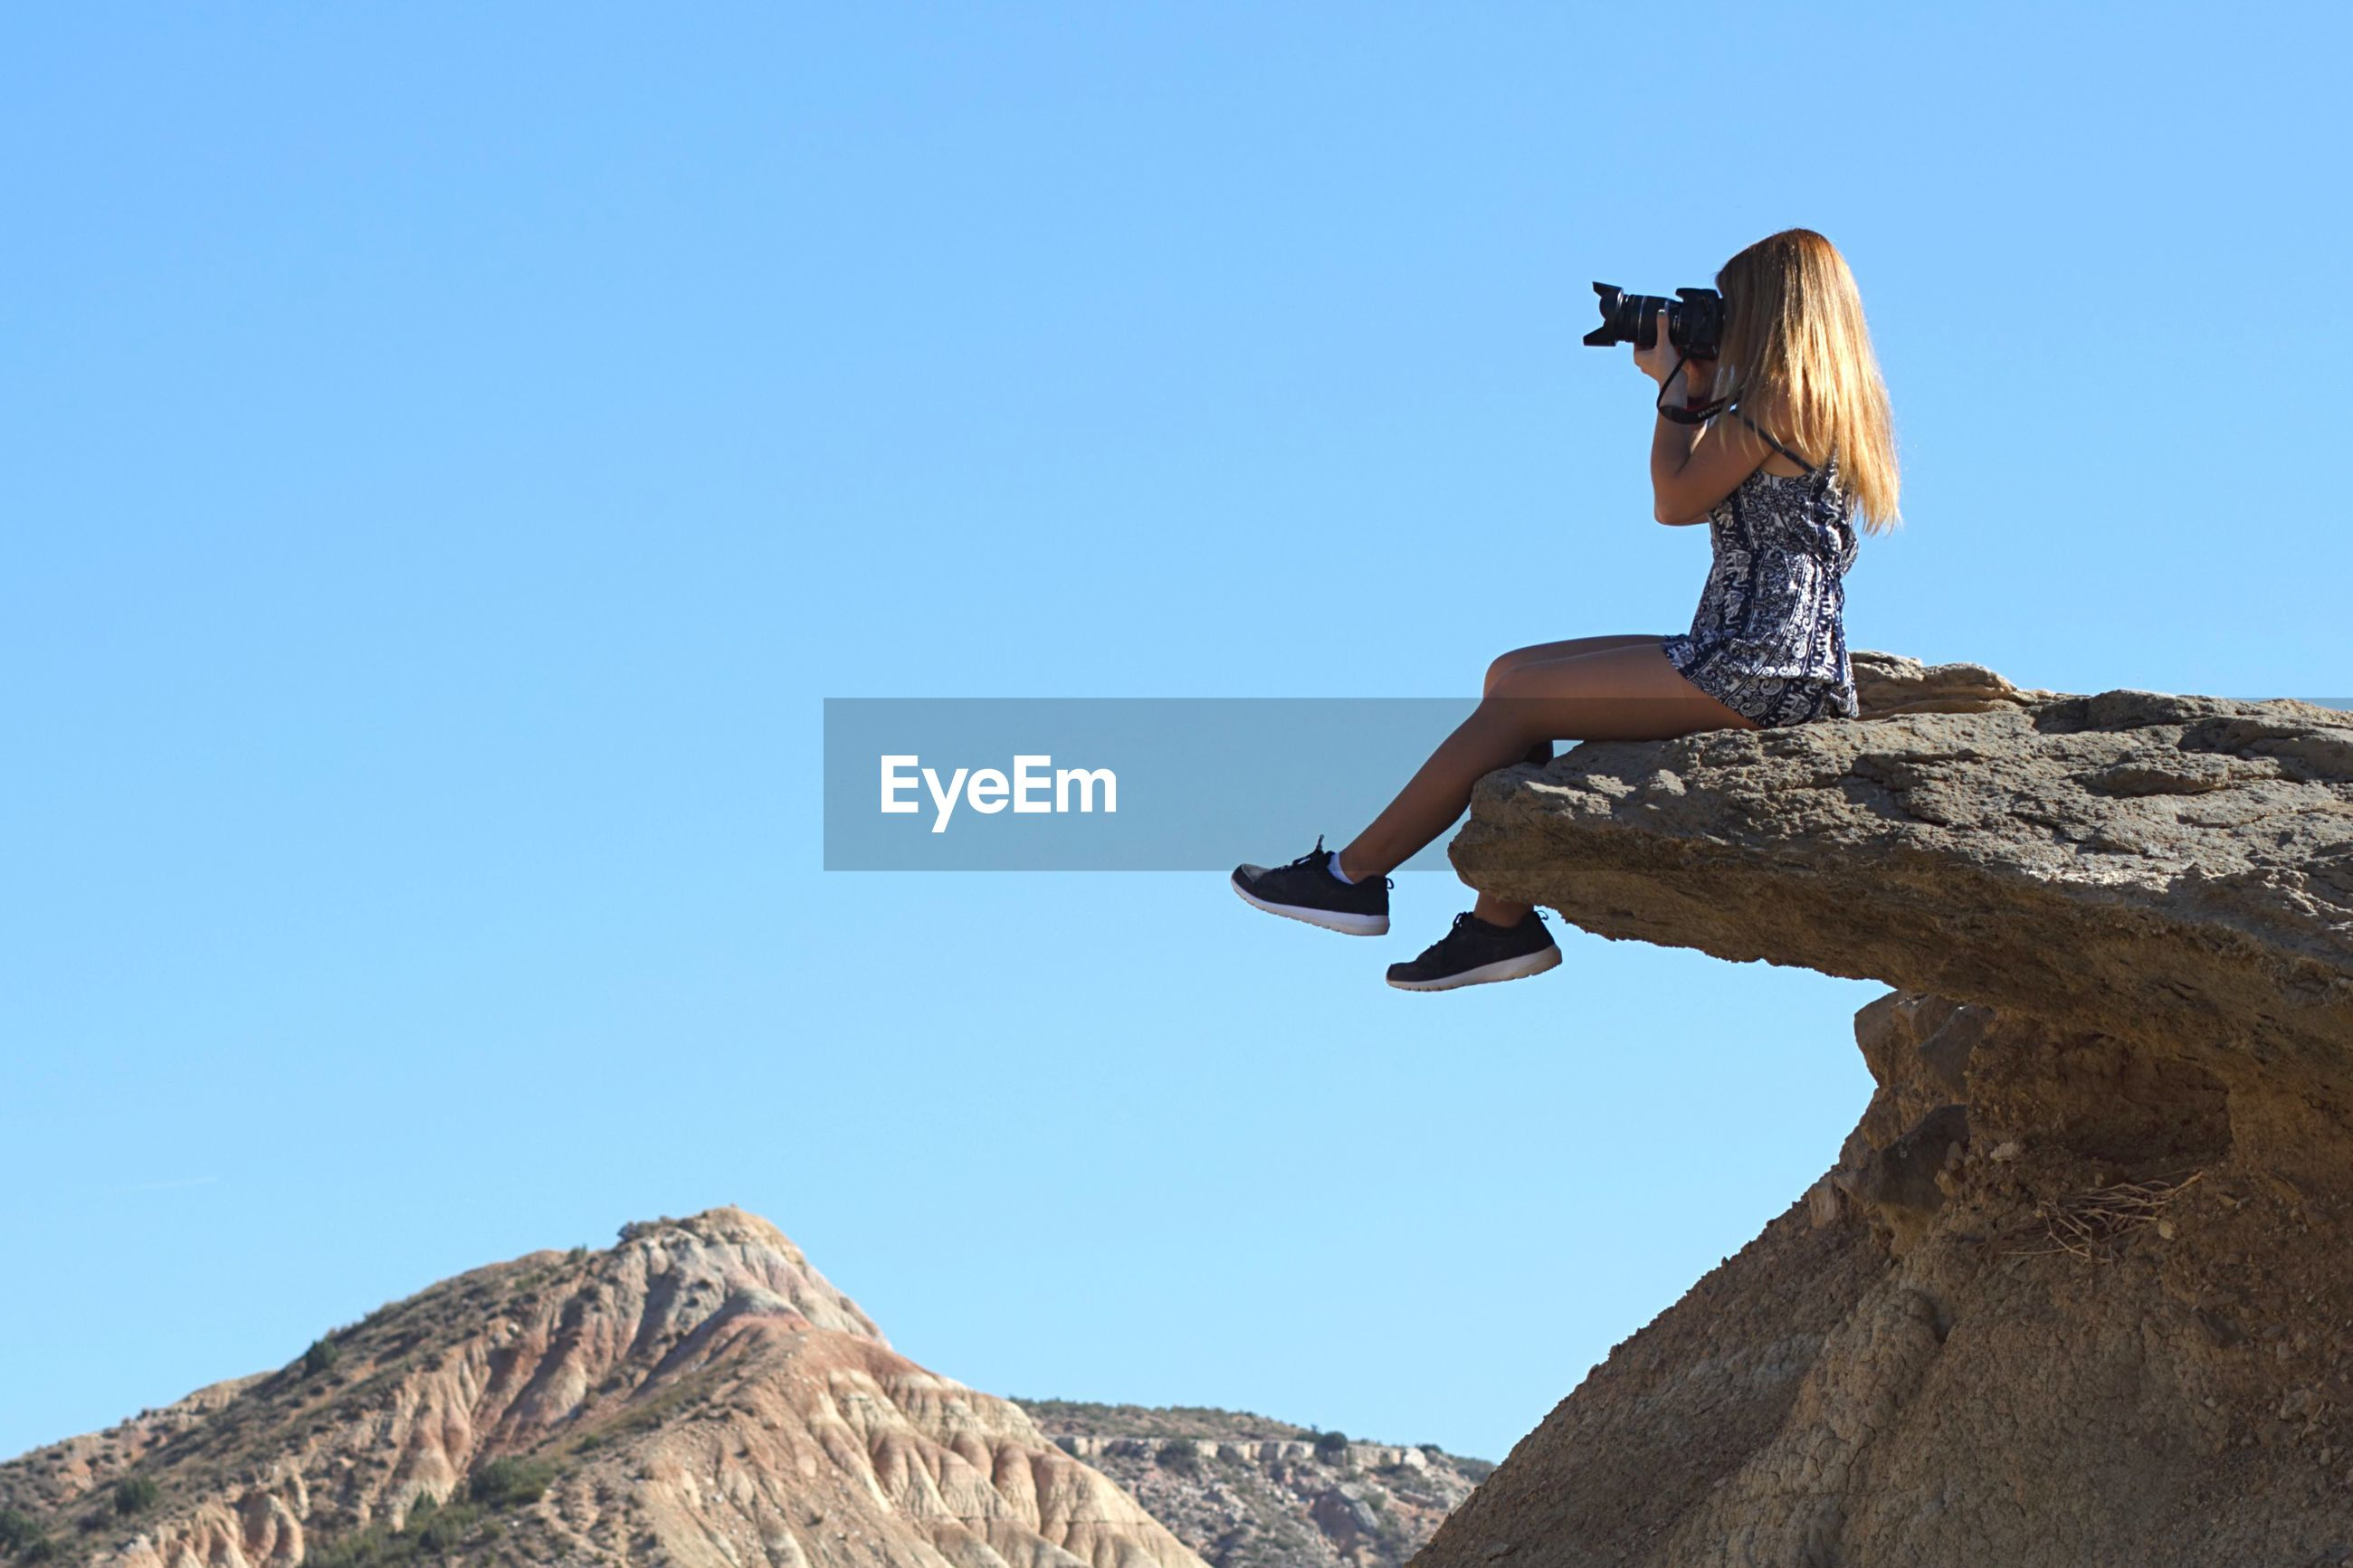 Low angle view of woman photographing while sitting on rock against clear blue sky